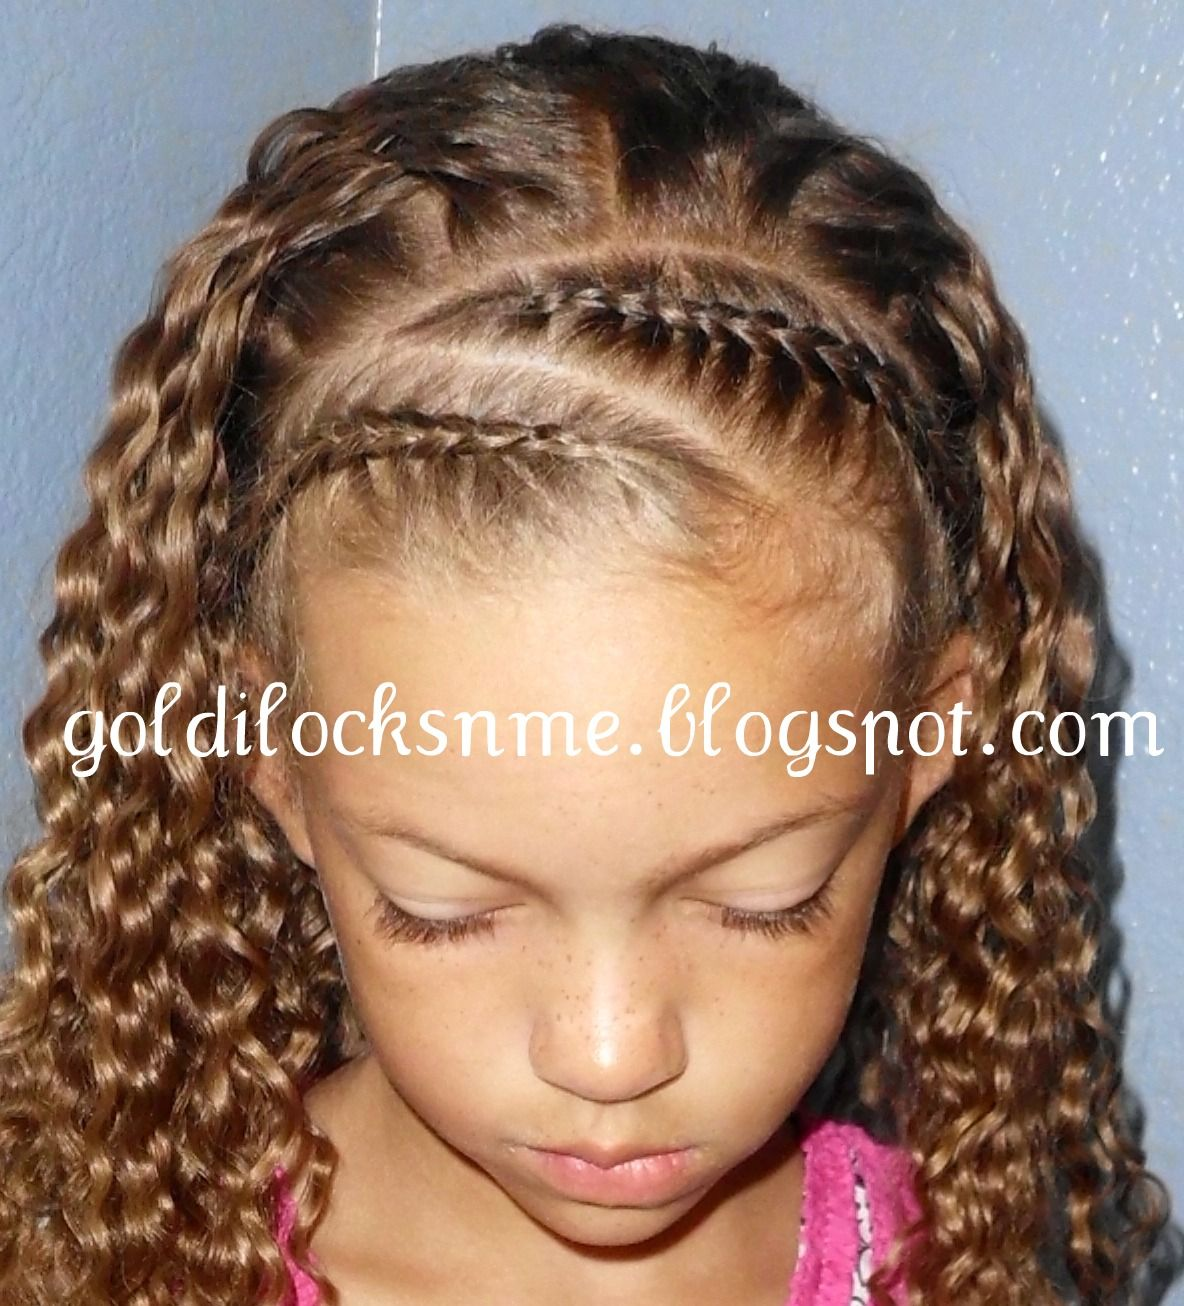 Hairstyles For Girls With Mixed Hair: Kids Hairstyles, Mixed Kids Hairstyles